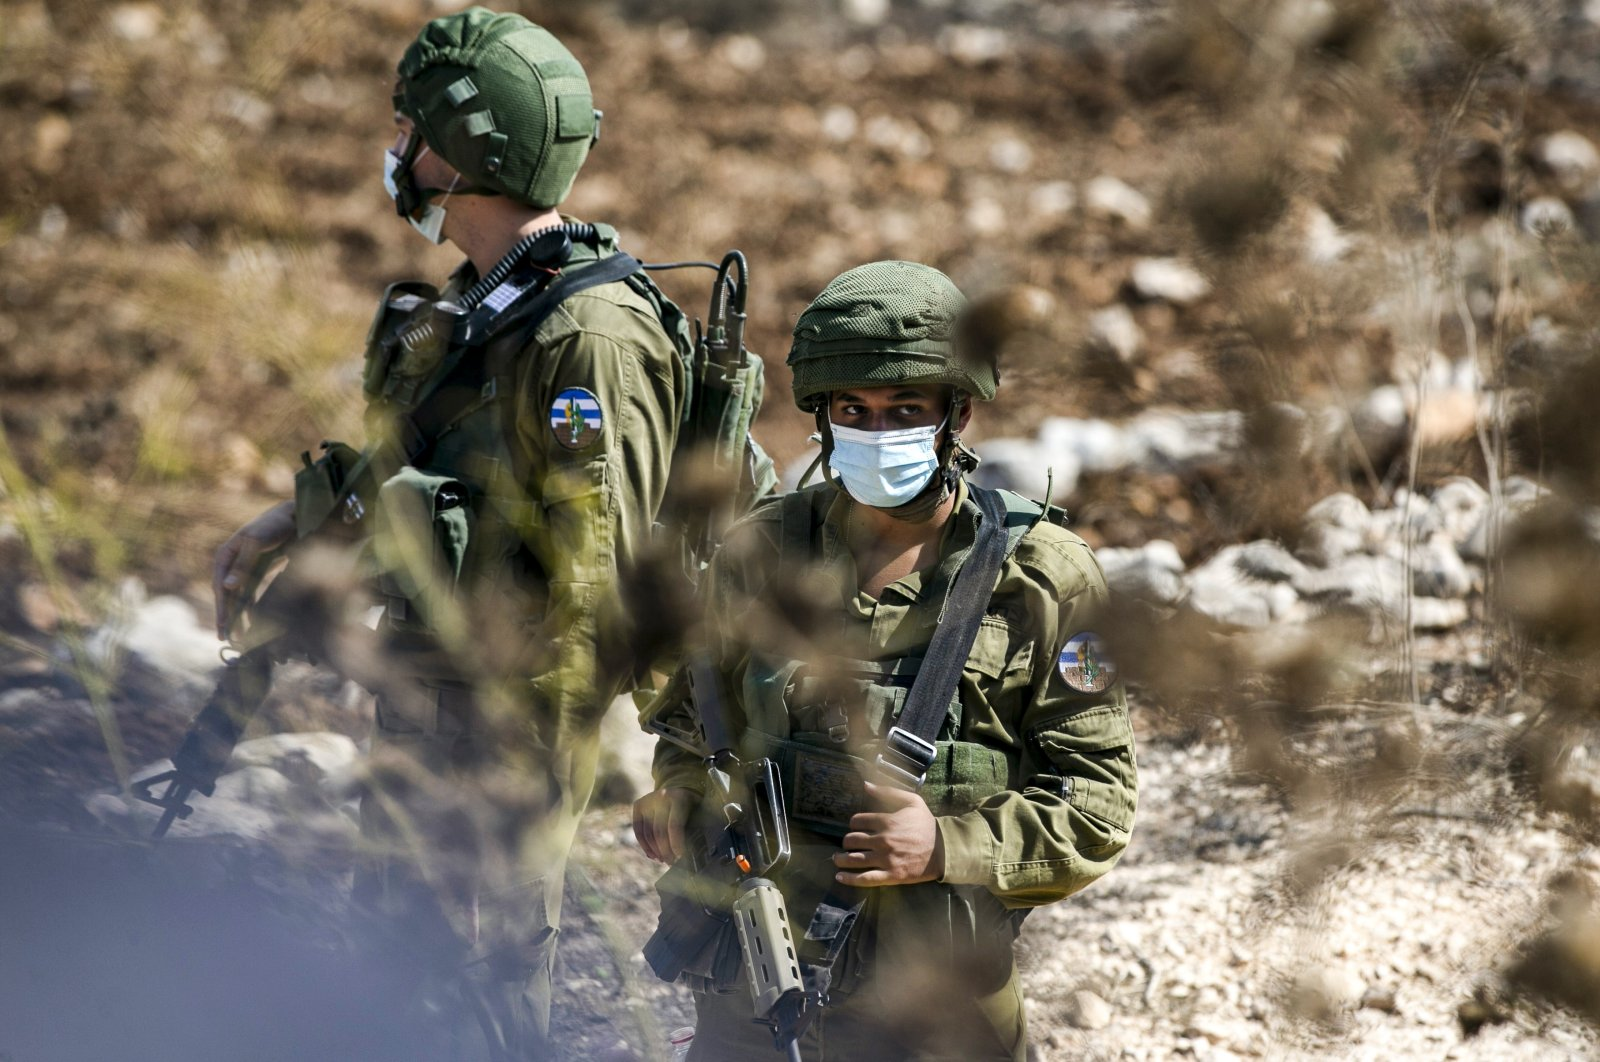 Israeli soldiers, mask-clad due to the coronavirus pandemic, stand by in the town of Asira Shamaliya in the occupied West Bank near Nablus, Palestine, Oct. 9, 2020. (AFP Photo)